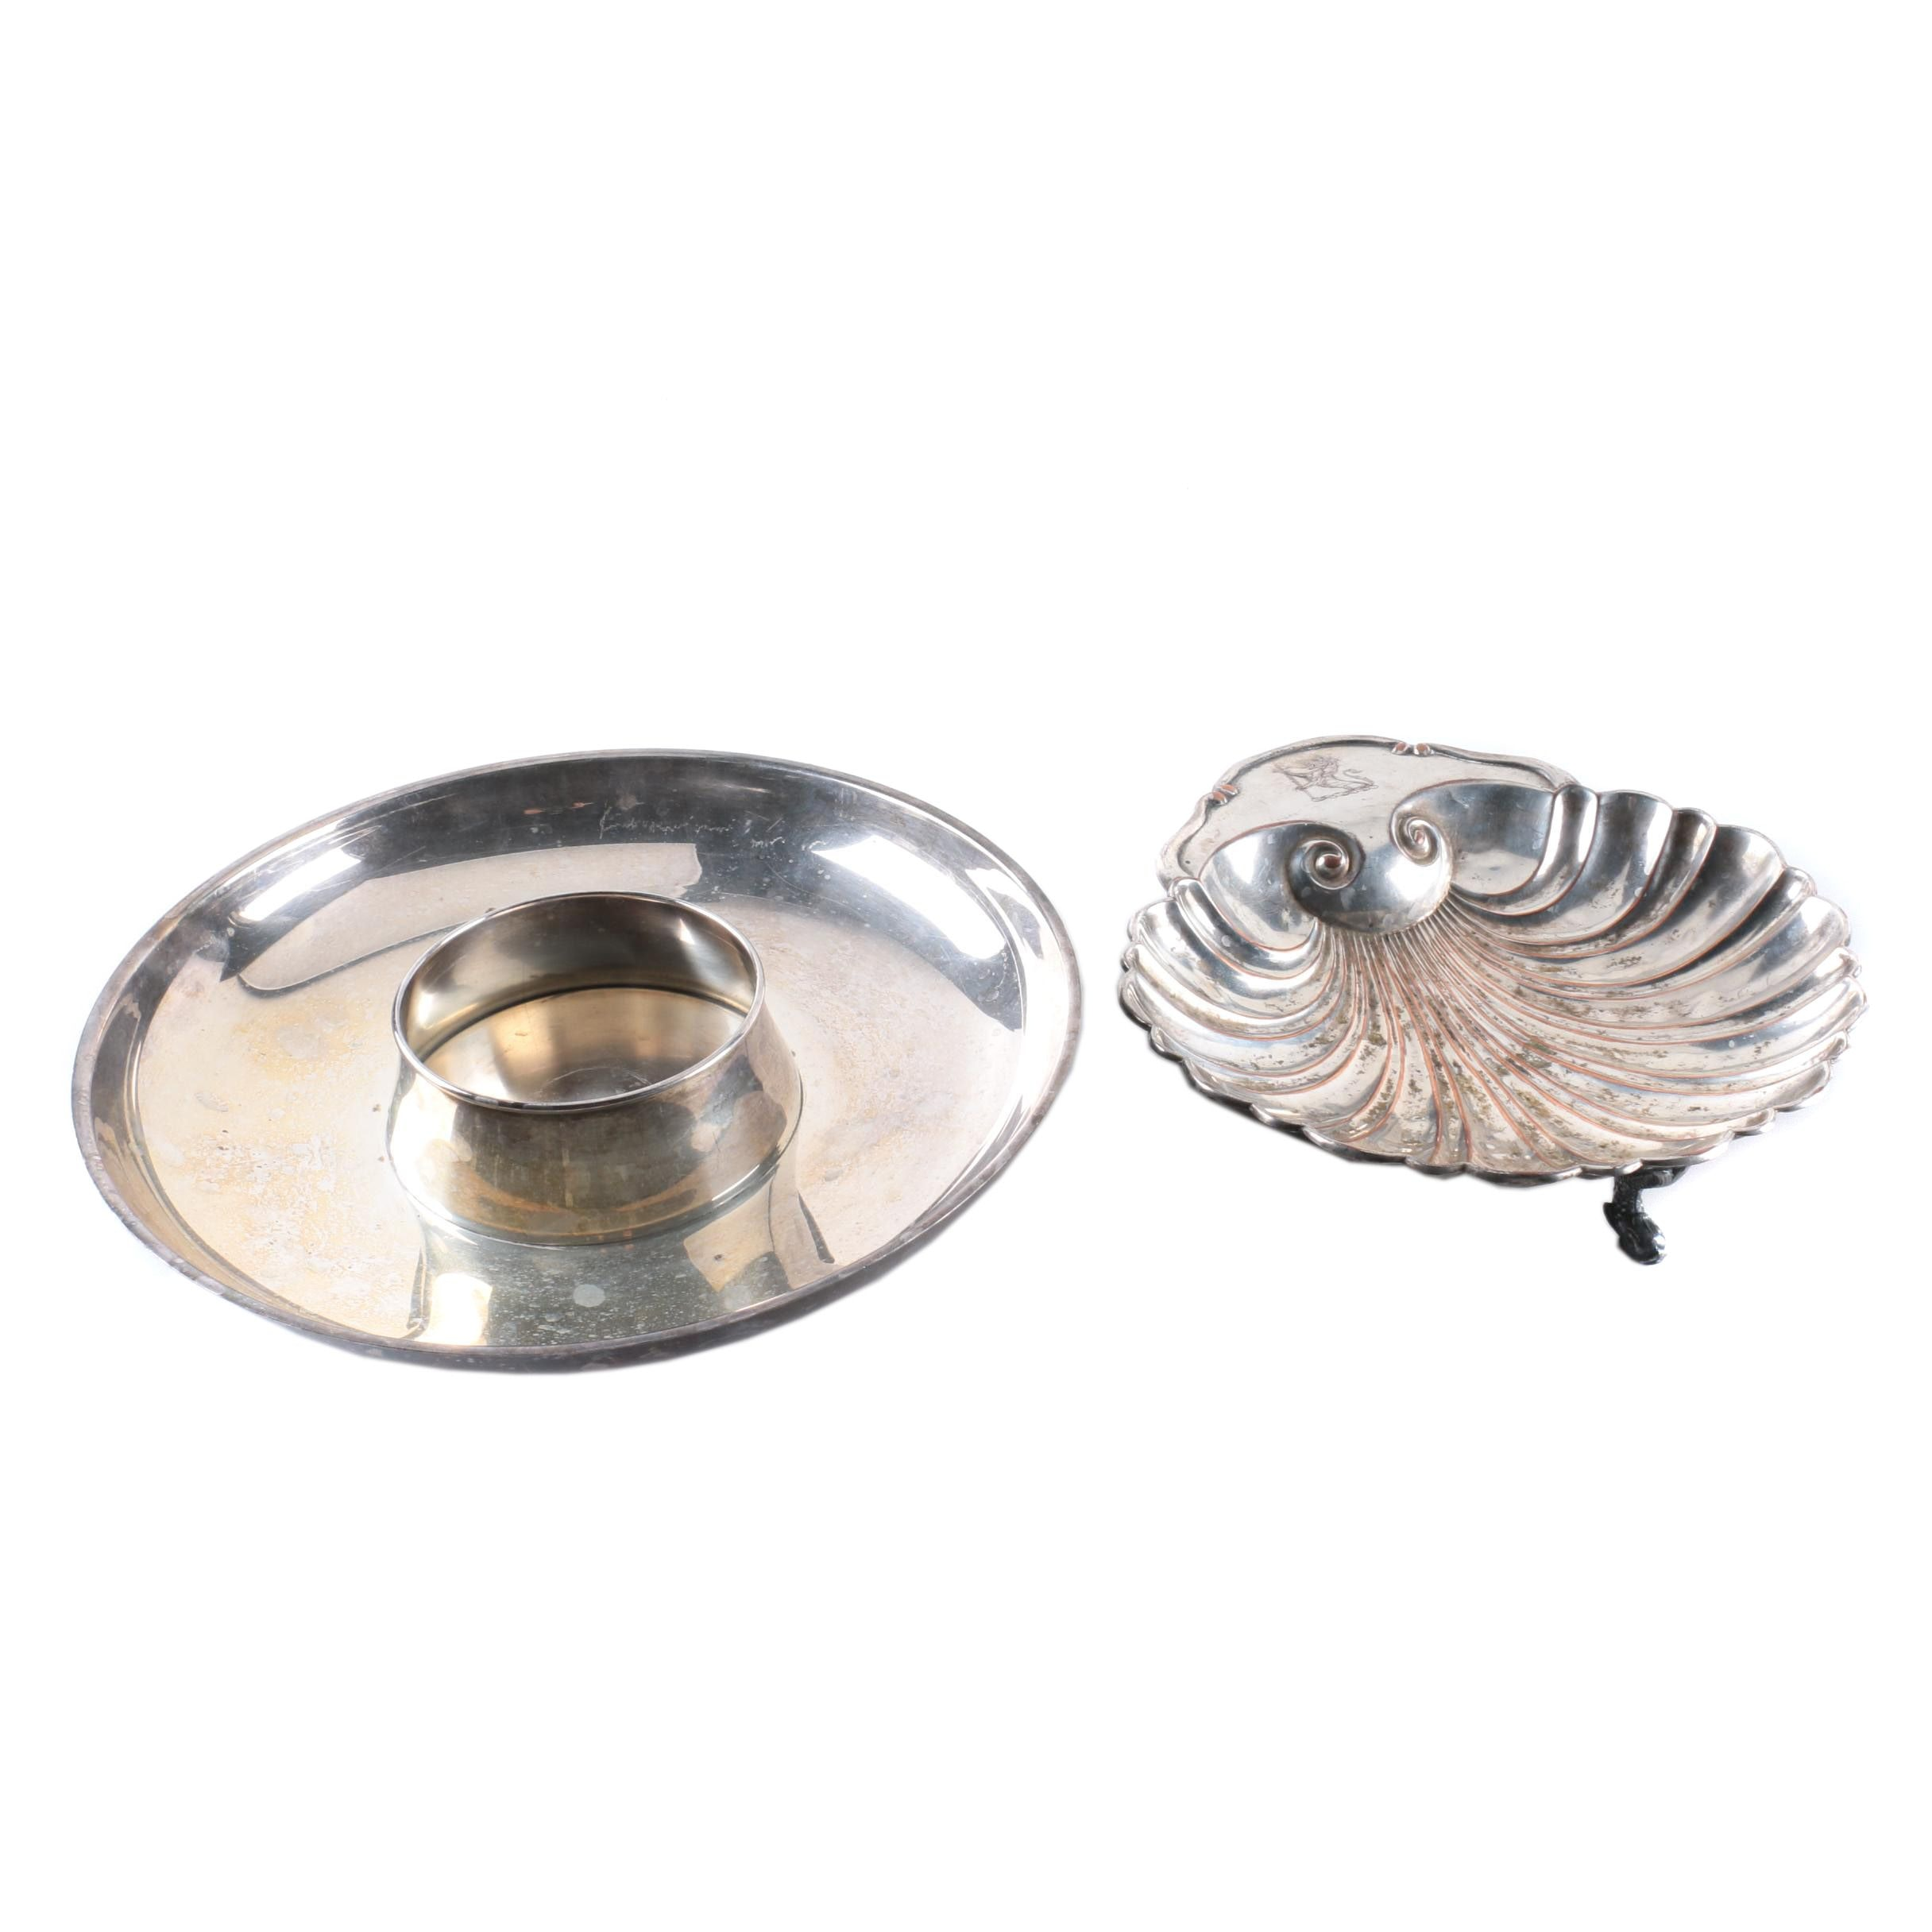 Cresent Silverware Mfg. Co. Shell-Shaped Tray and Other Silver Plate Tray